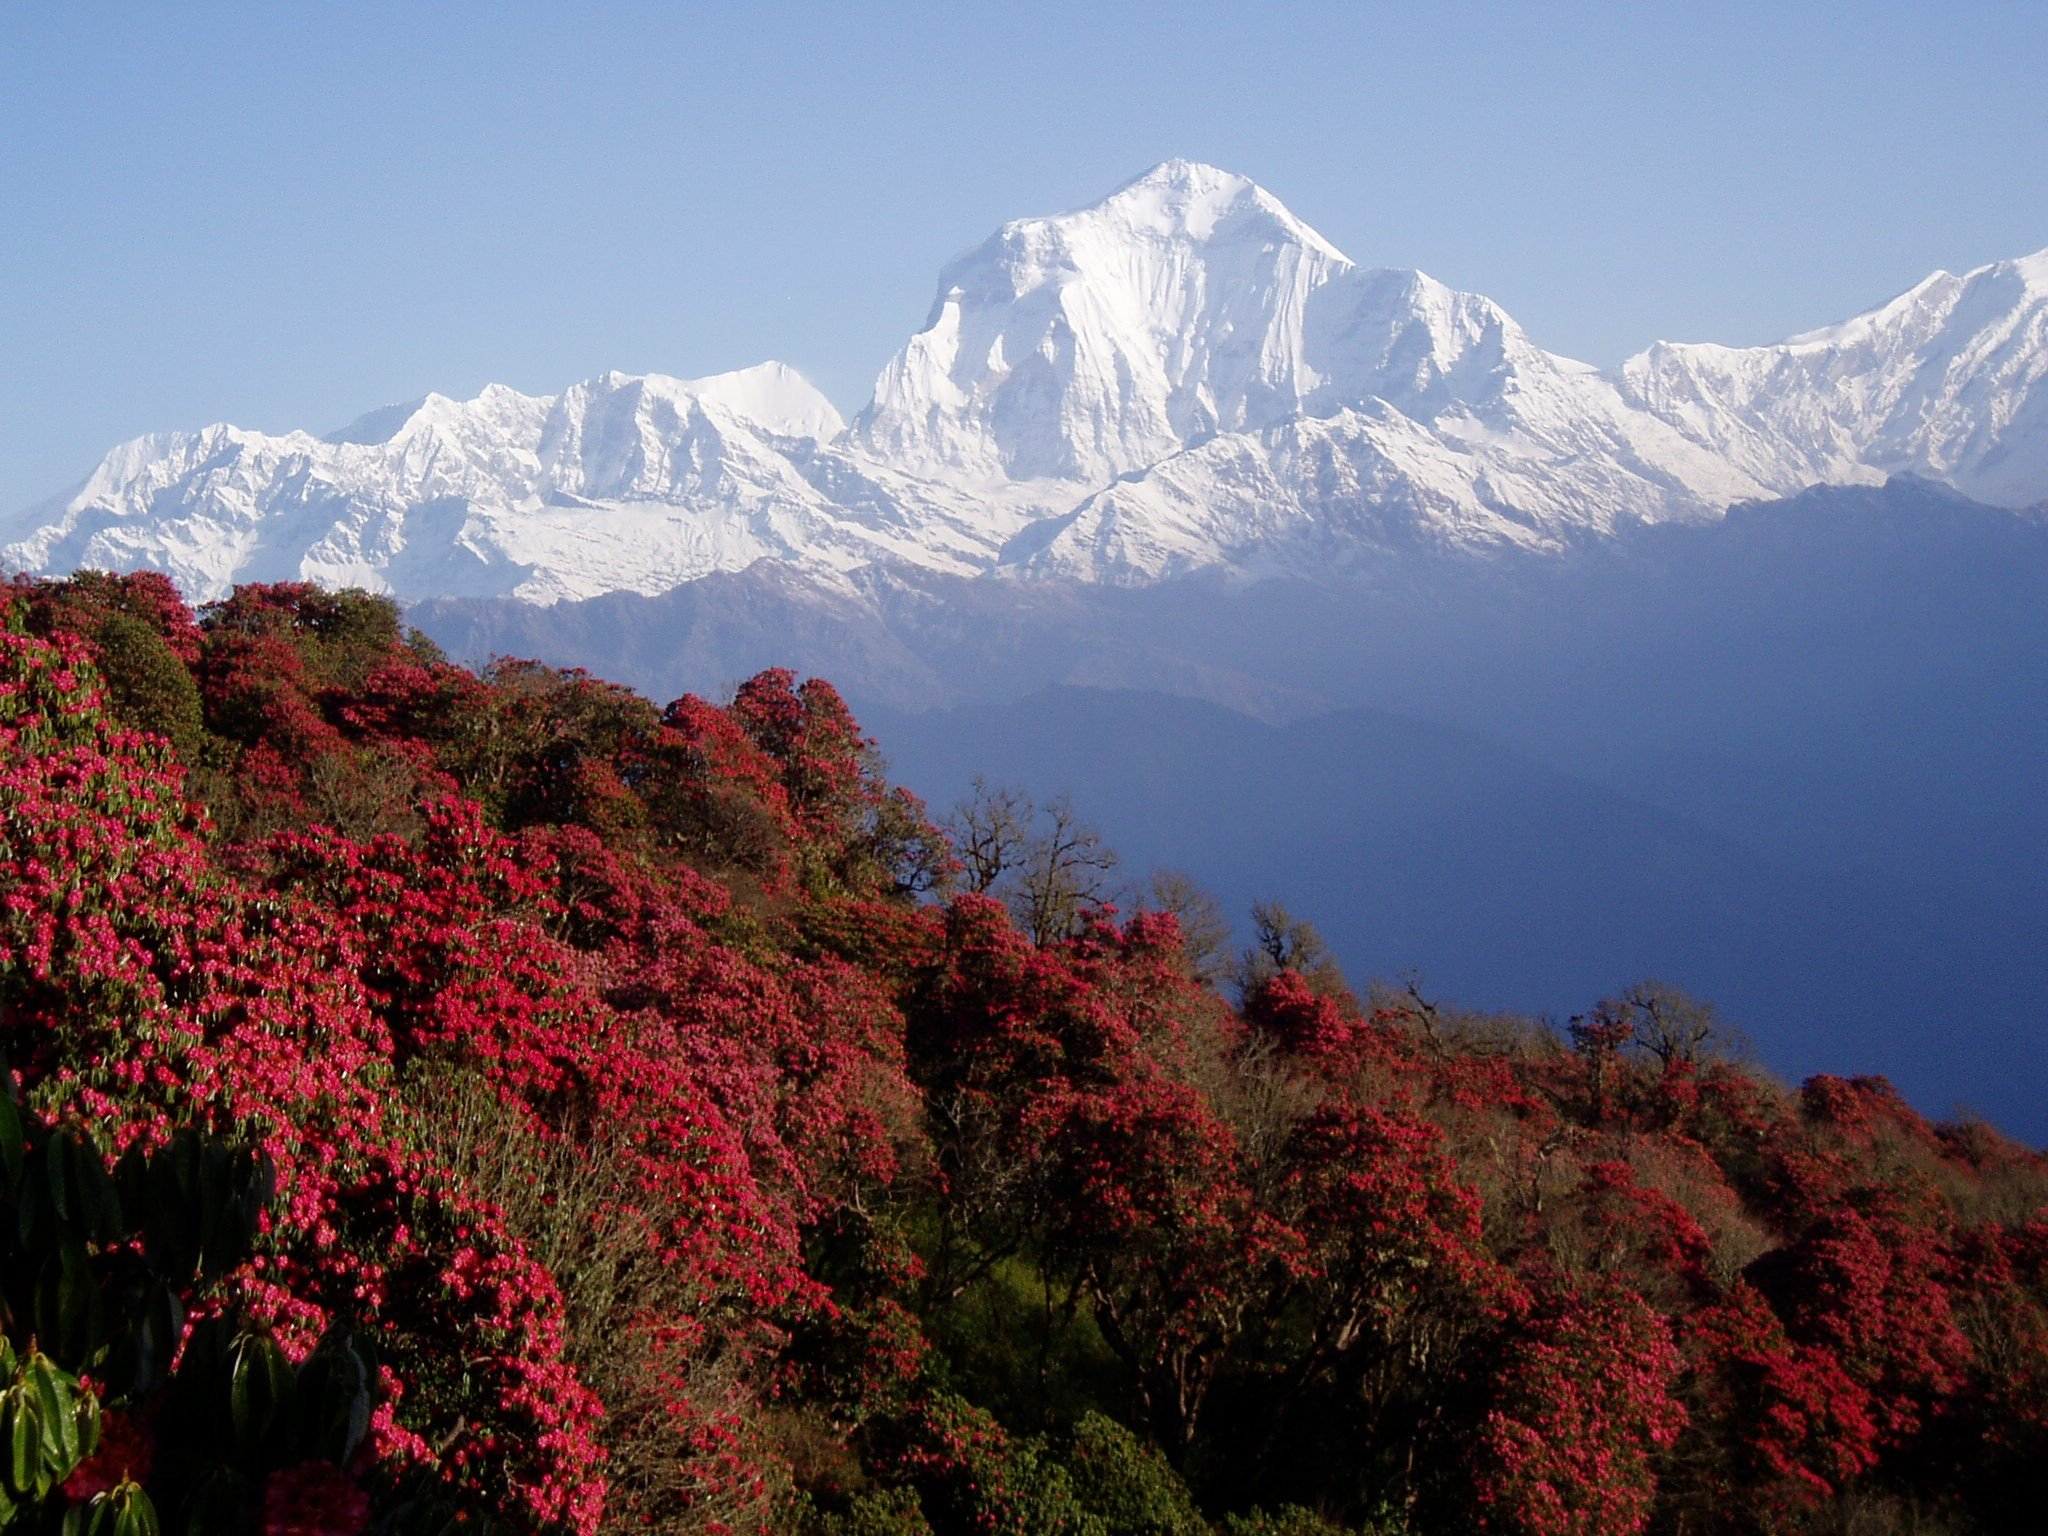 Nepal Himalayas Mountains Hd Wallpapers Desktop And